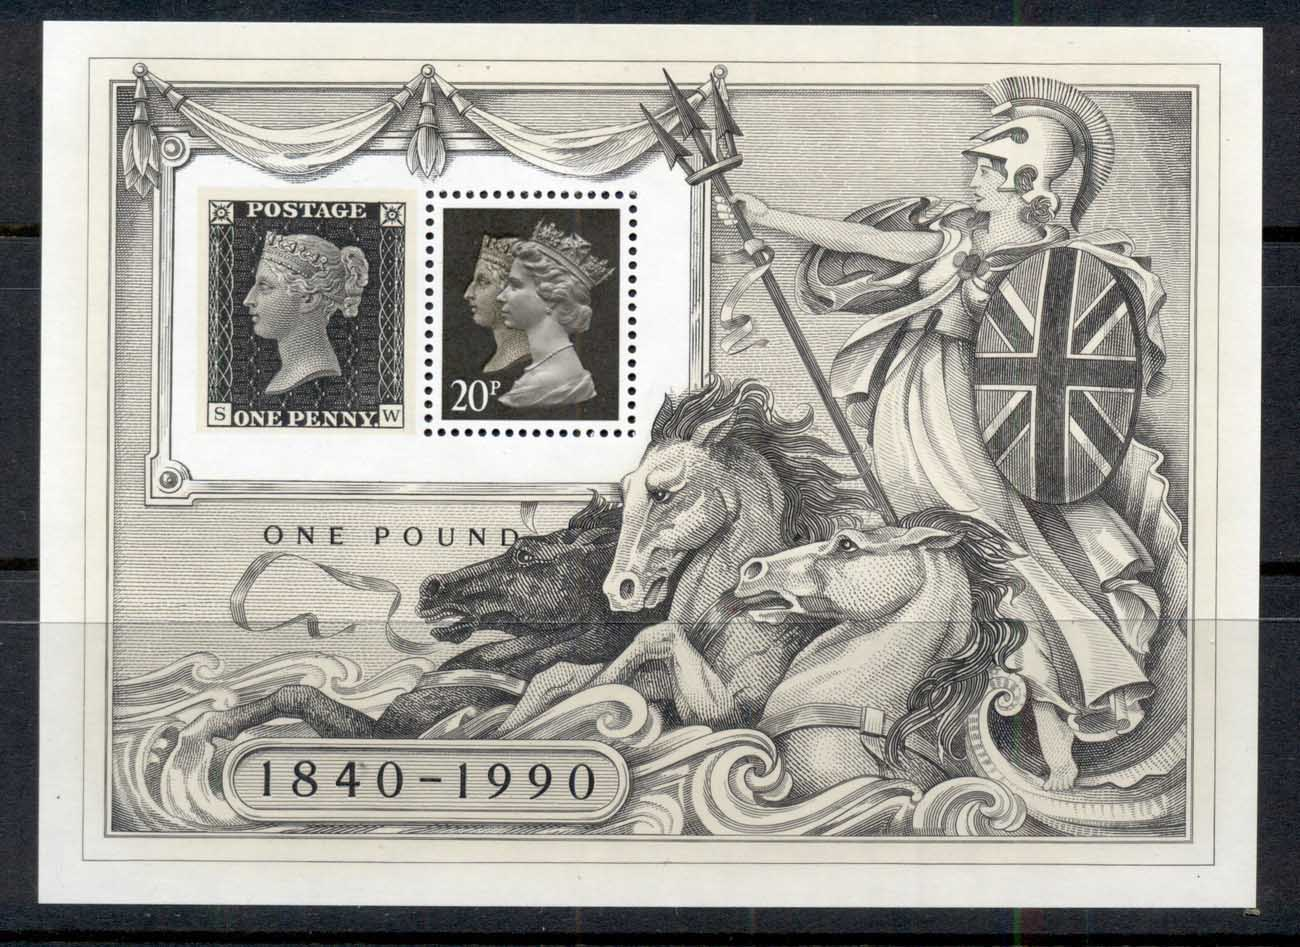 GB 1990 Penny Black 150th Anniv MS MUH